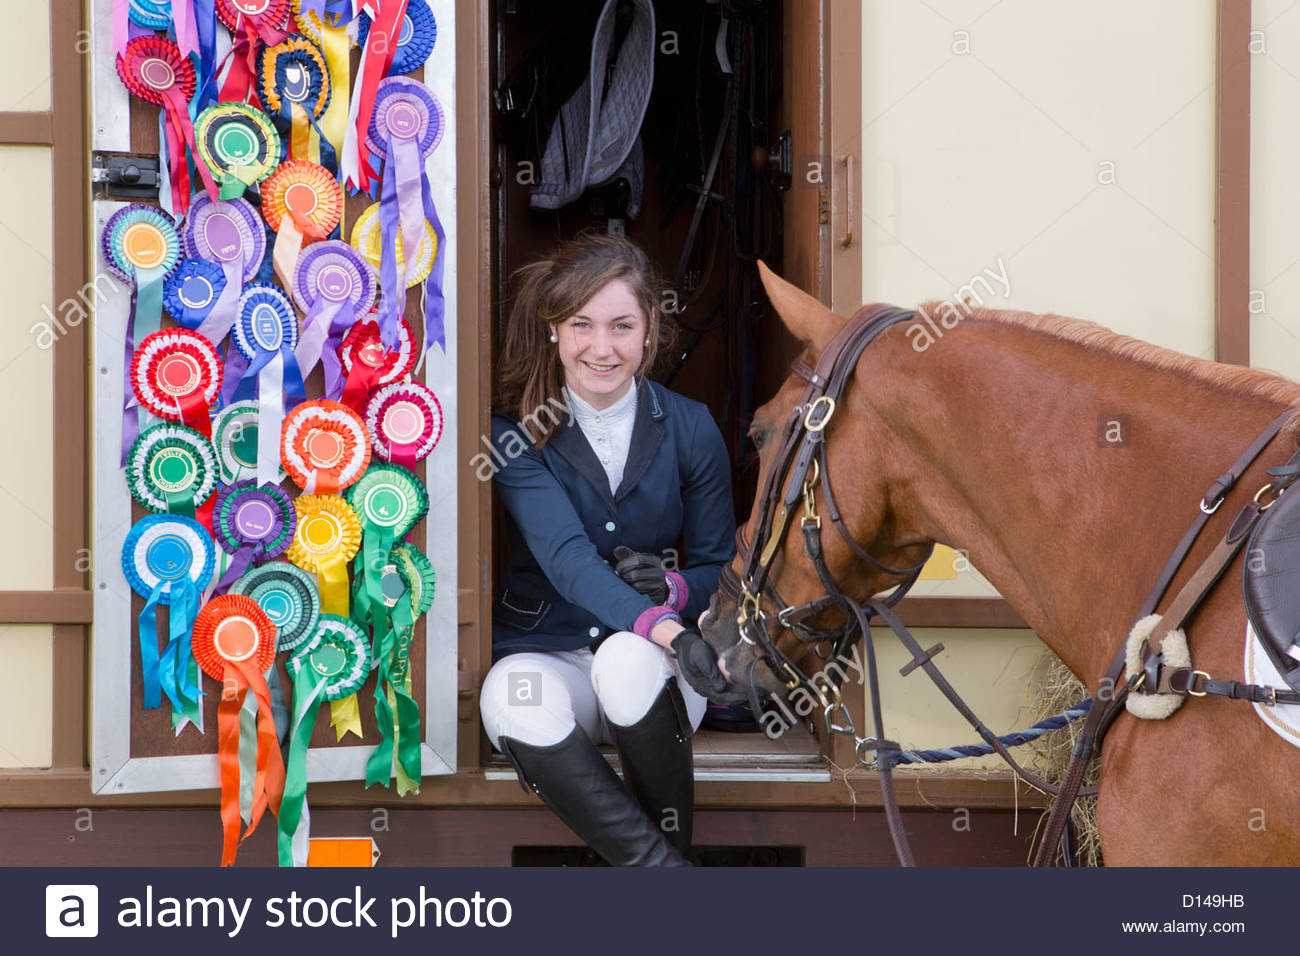 Portrait of smiling girl in equestrian uniform feeding horse in doorway of trailer with rosettes covering door - Stock Image